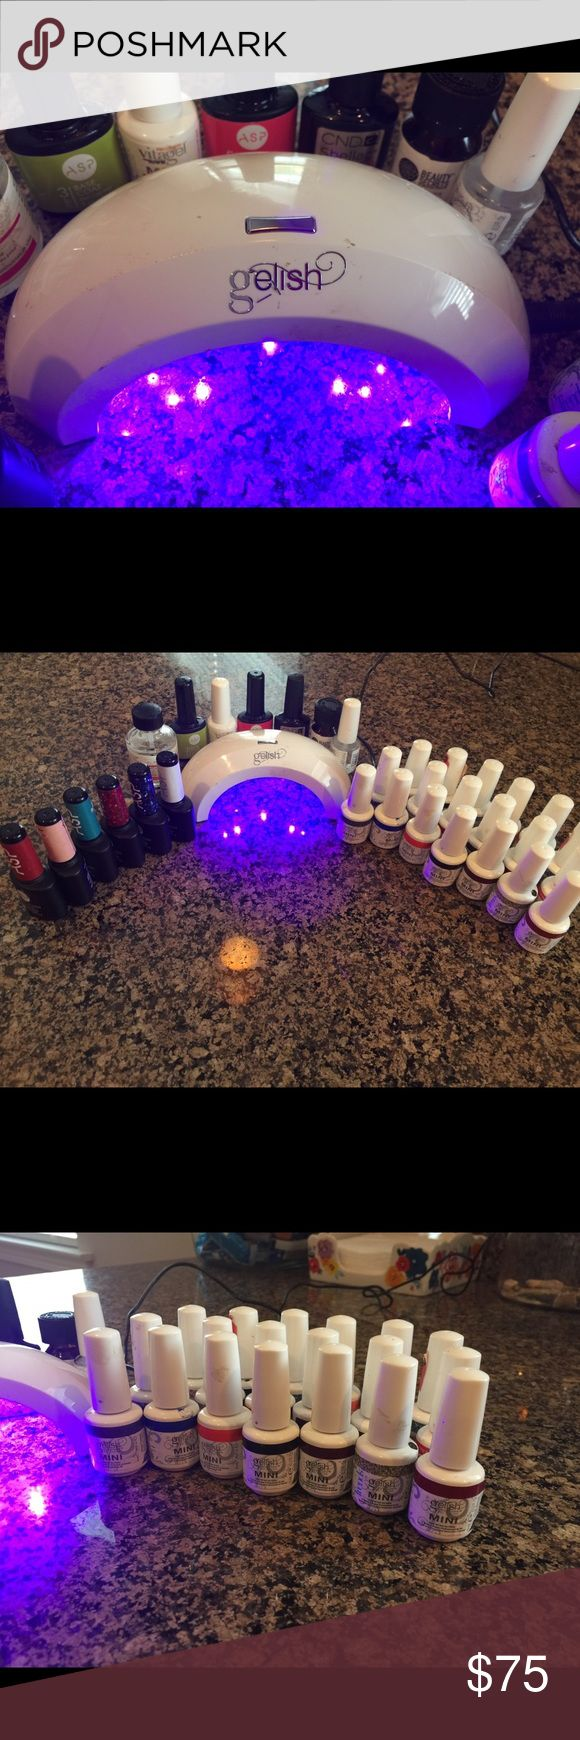 Gelish LED curing lamp with 32 products! Exact same product used in salons! All products purchased at Sally's Beauty! Manicure lasts 3 weeks! 6 ASP colors, 19 Gelish colors, Prep B-4, ASP baseball and top coat, Gelish nail strengthener, CND Shallc base coat, Acid Free primer, and Gelish pH bond! So many beautiful colors from neutrals to neon and even some glitter ones for accent nail! Tons of product left in polishes...each only used one or twice! Gelish Other